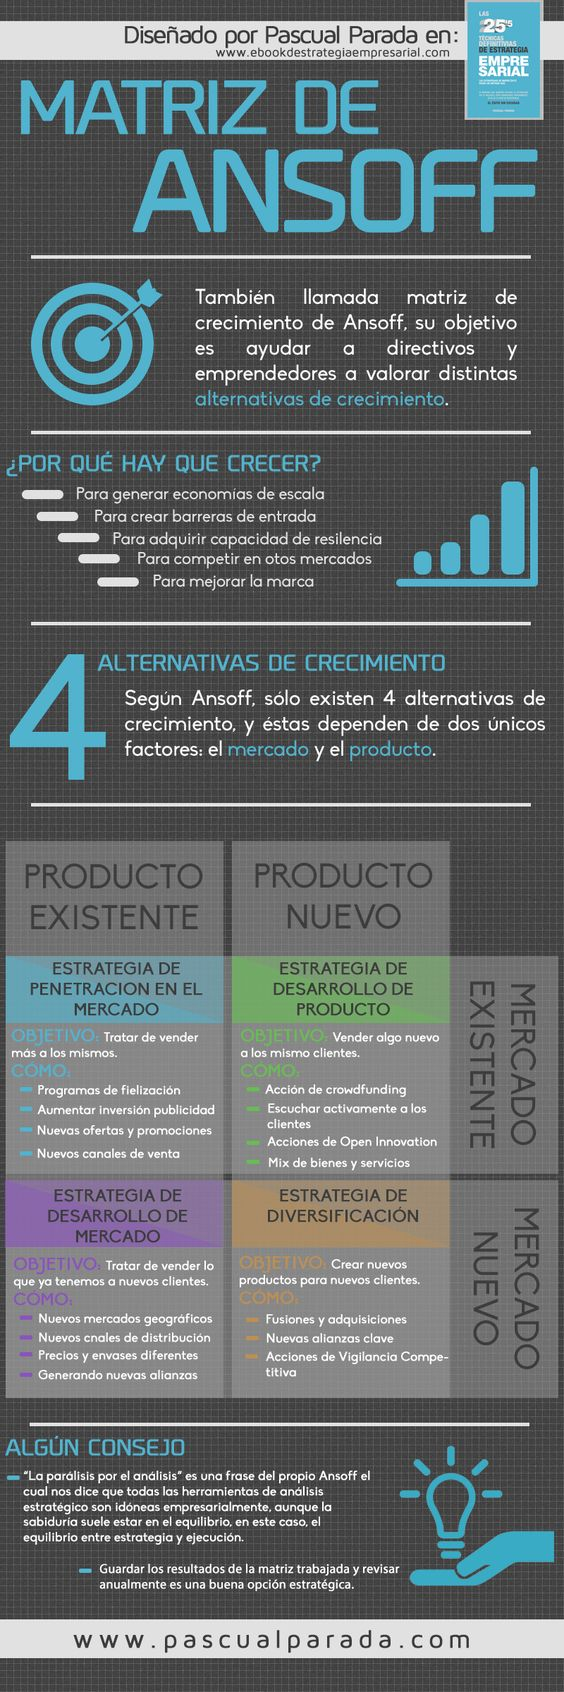 matriz-ansoff-marketing-experto-alfredo-cortes